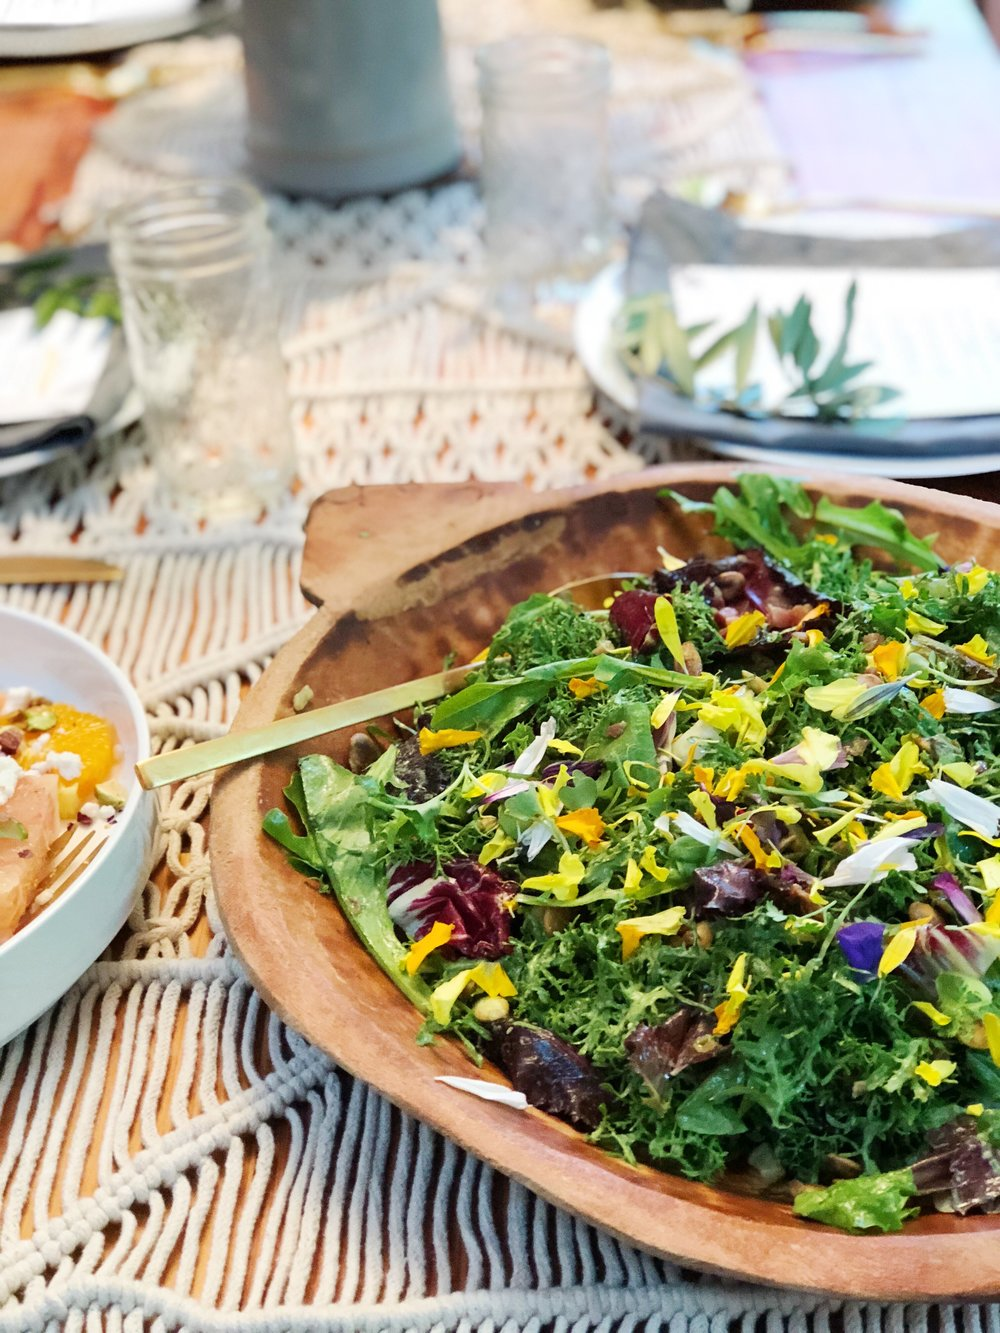 Spicy Mustard Green Salad with Paprika Spiced Pancetta, Toasted Pumpkin Seeds, Tossed with Green Vegan Buttermilk Dressing and Garnished with Edible Flowers